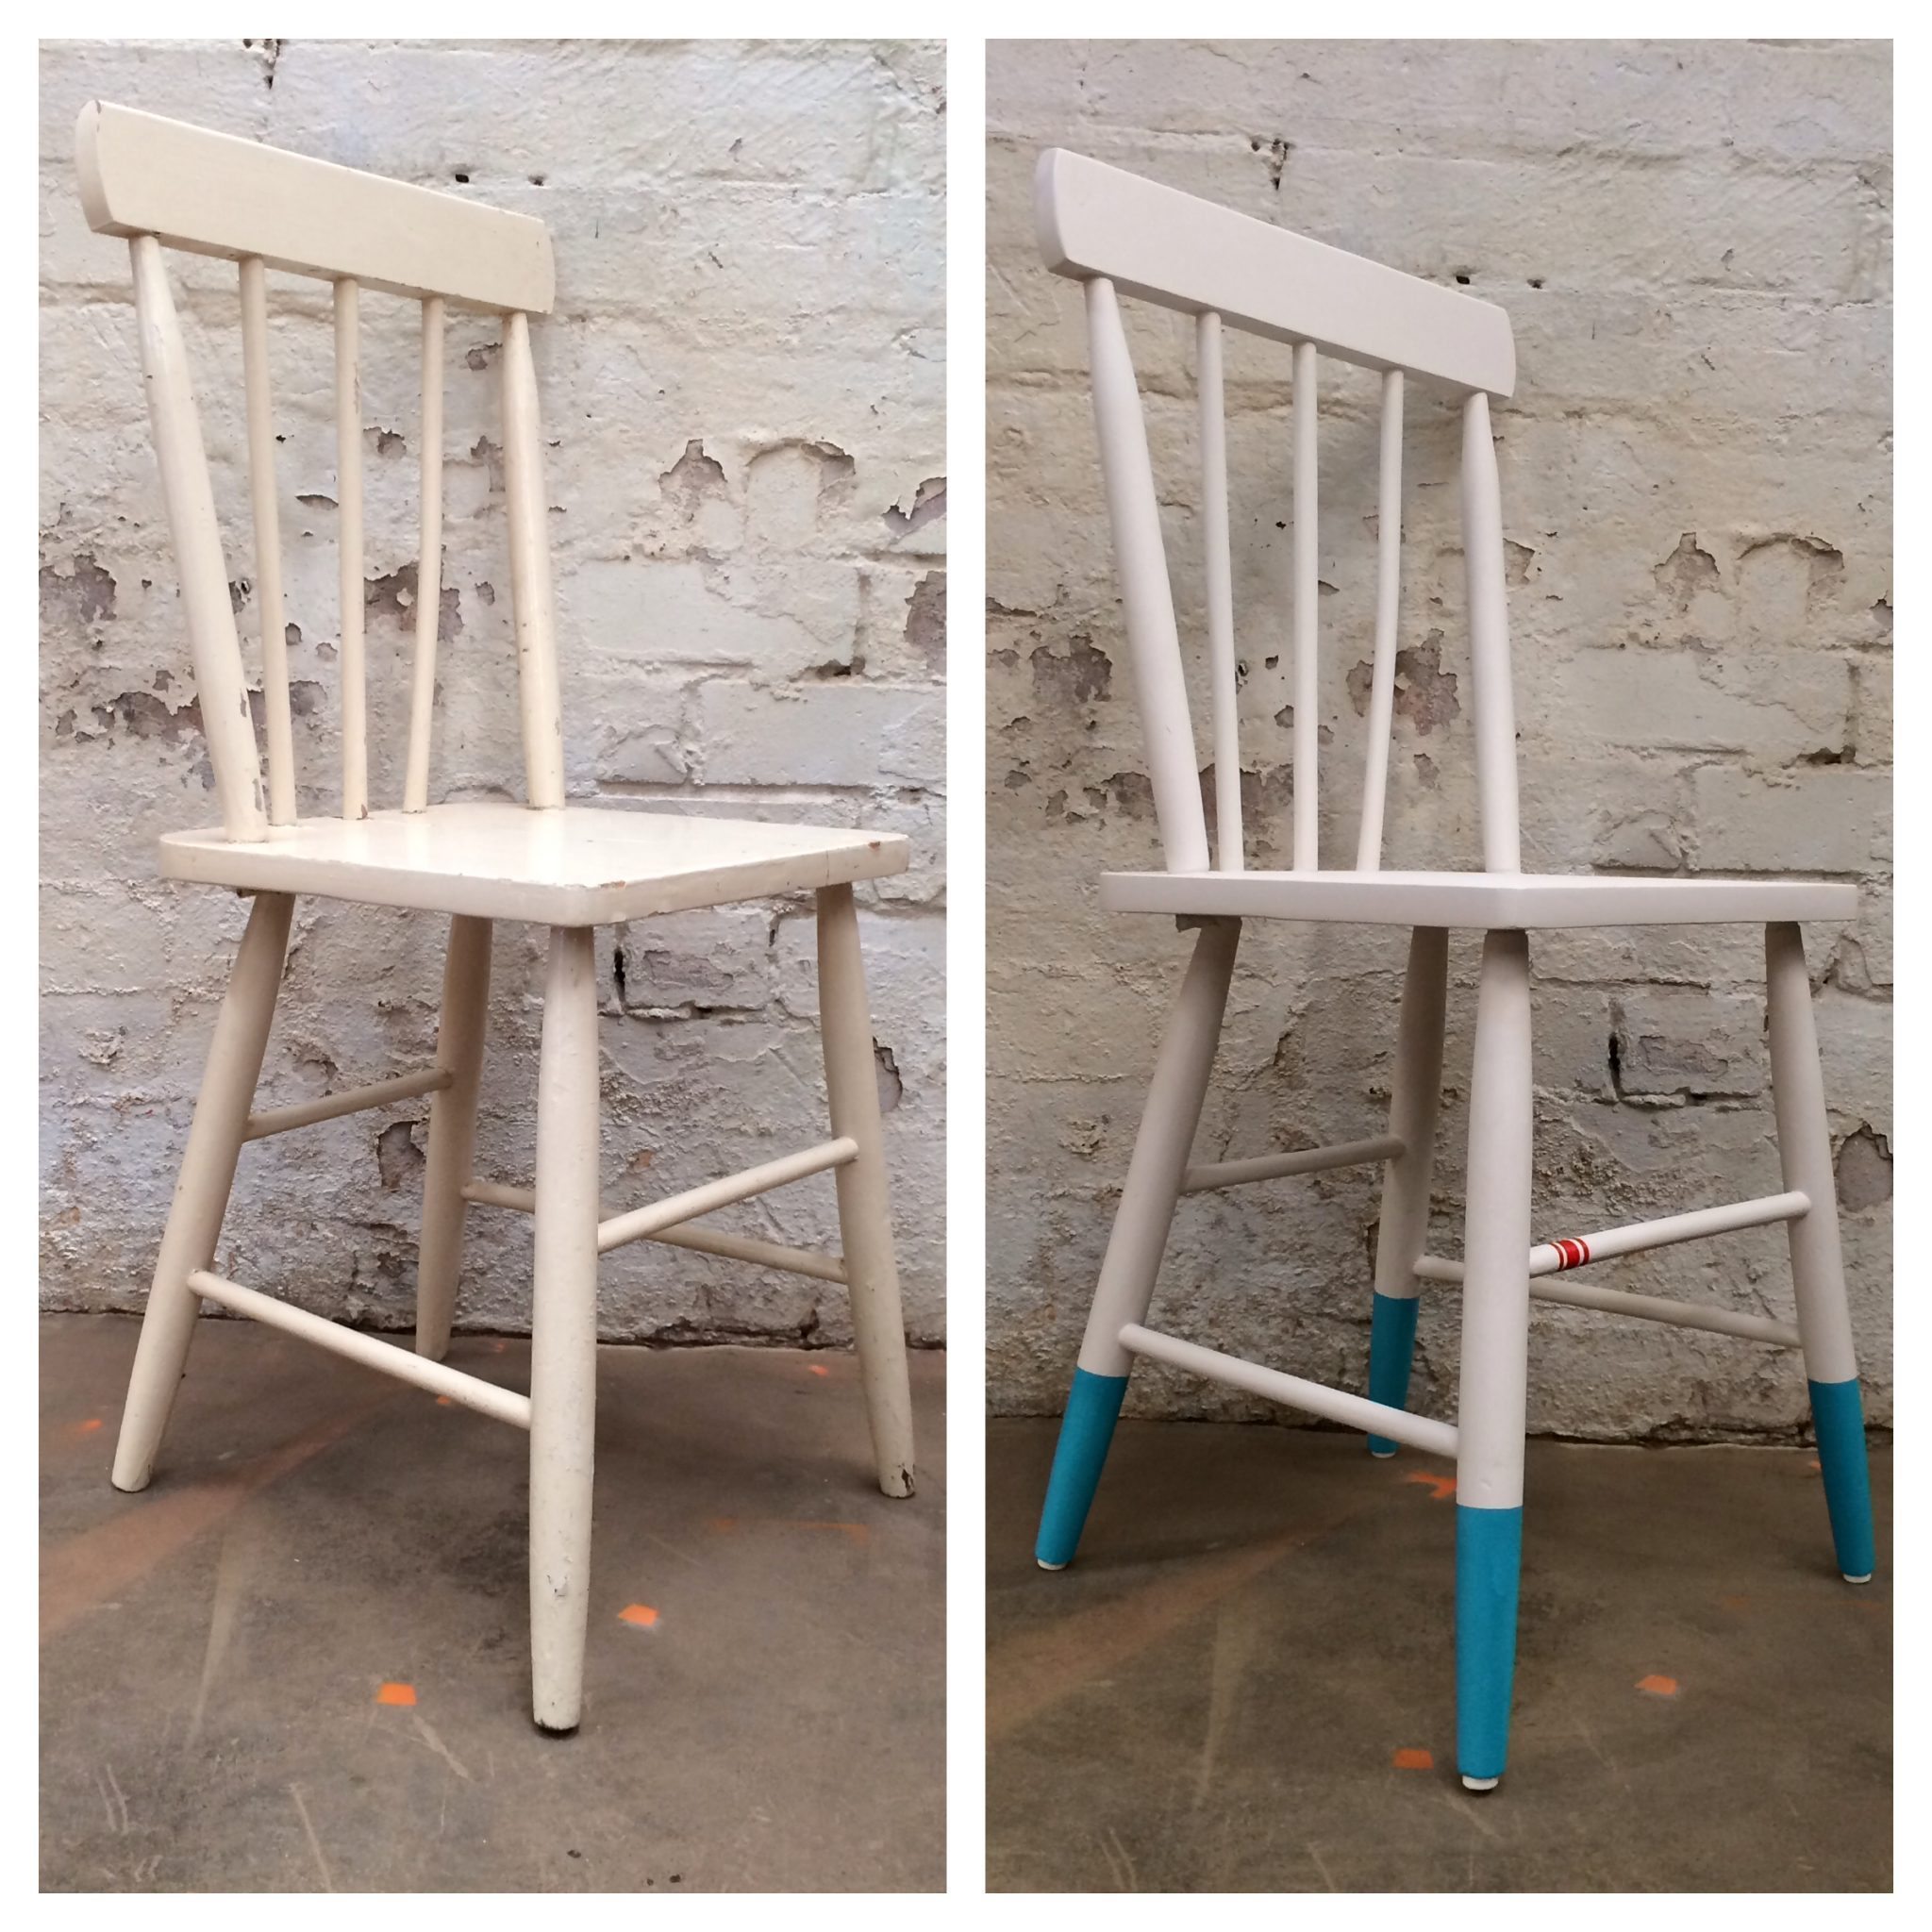 There is nothing like a good DIY to get your creative juices going, and here is an update of a project we shared a while back, from DIY extraordinaire Natasha Dickins from Little Red Industries – how to create a dipped feet chair. Natasha starred as DIY and craft presenter for The Living Room Series 1 on Network Ten and had a six-year stint as editor of Handyman Magazine, where she regularly inspired radio listeners around the country to roll up their sleeves and get handy. How to Upcycle a Dip Feet Chair Dipped legs are very on trend at the moment and this step by step challenge will take you through renovating the chair and creating the coloured feet. You can use any chair or any colours you would like and follow along with the techniques.